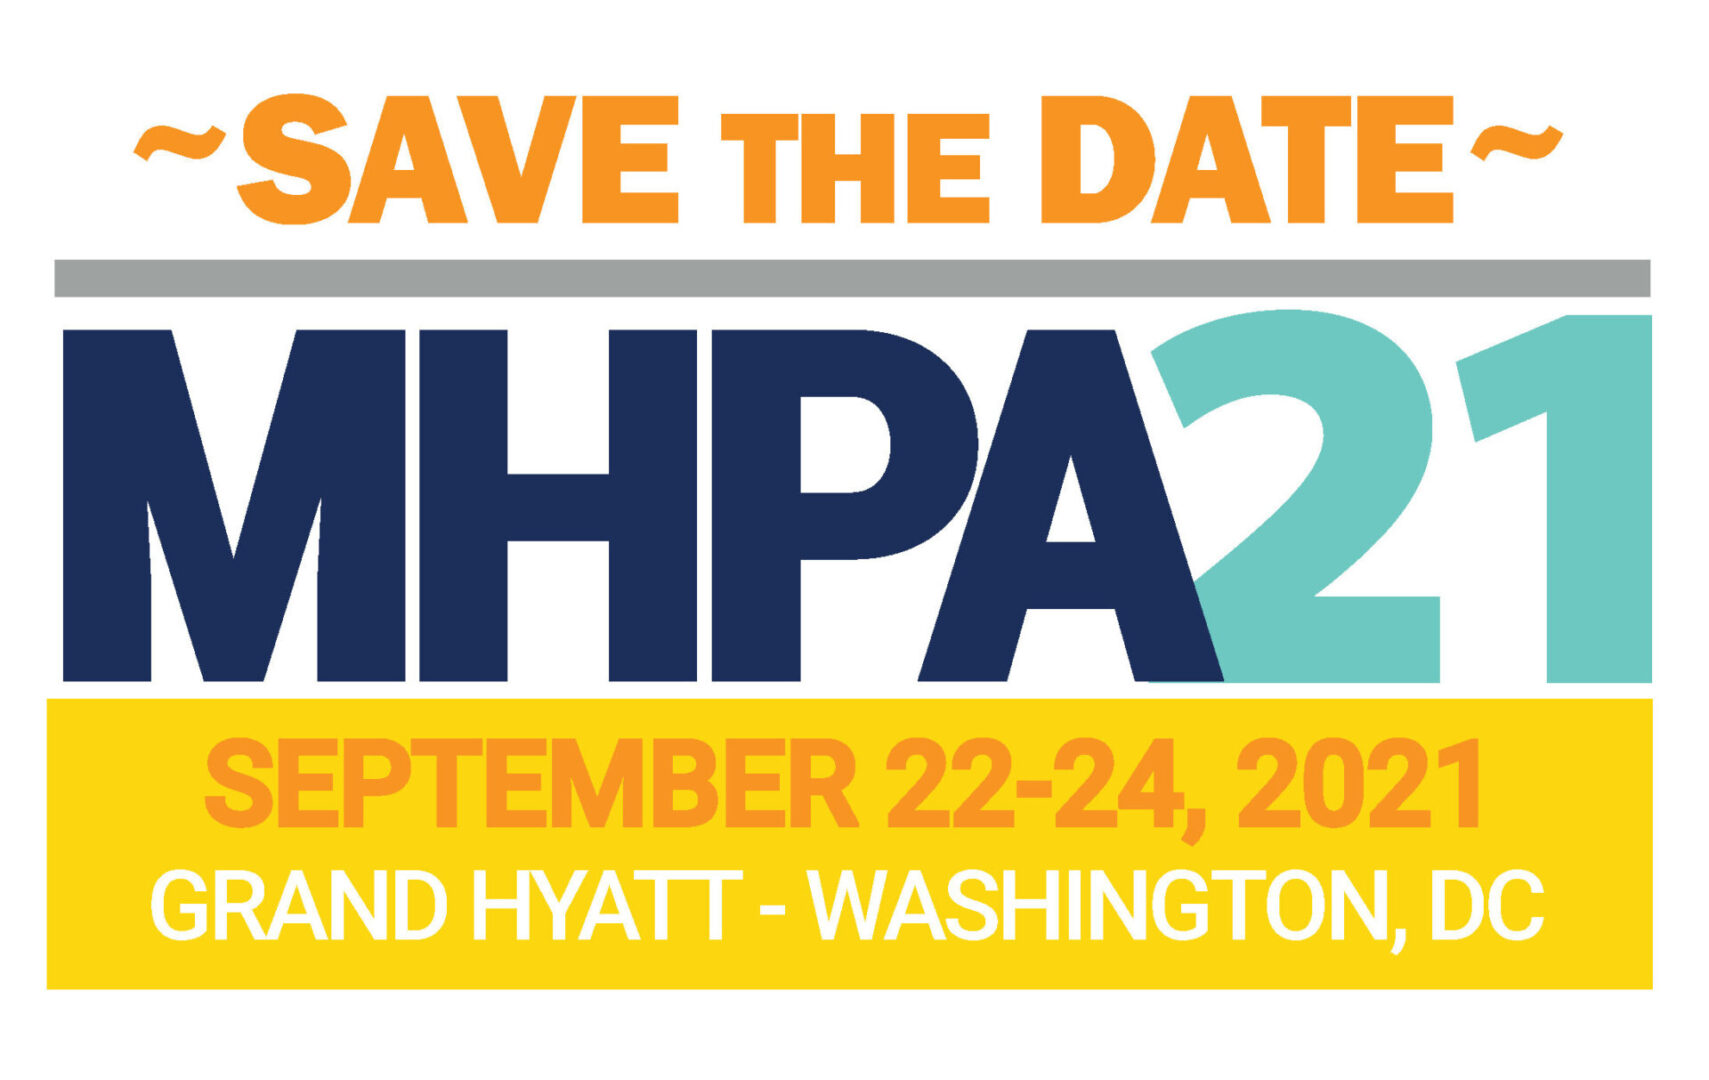 MHPA21 Meeting Logo_savedate